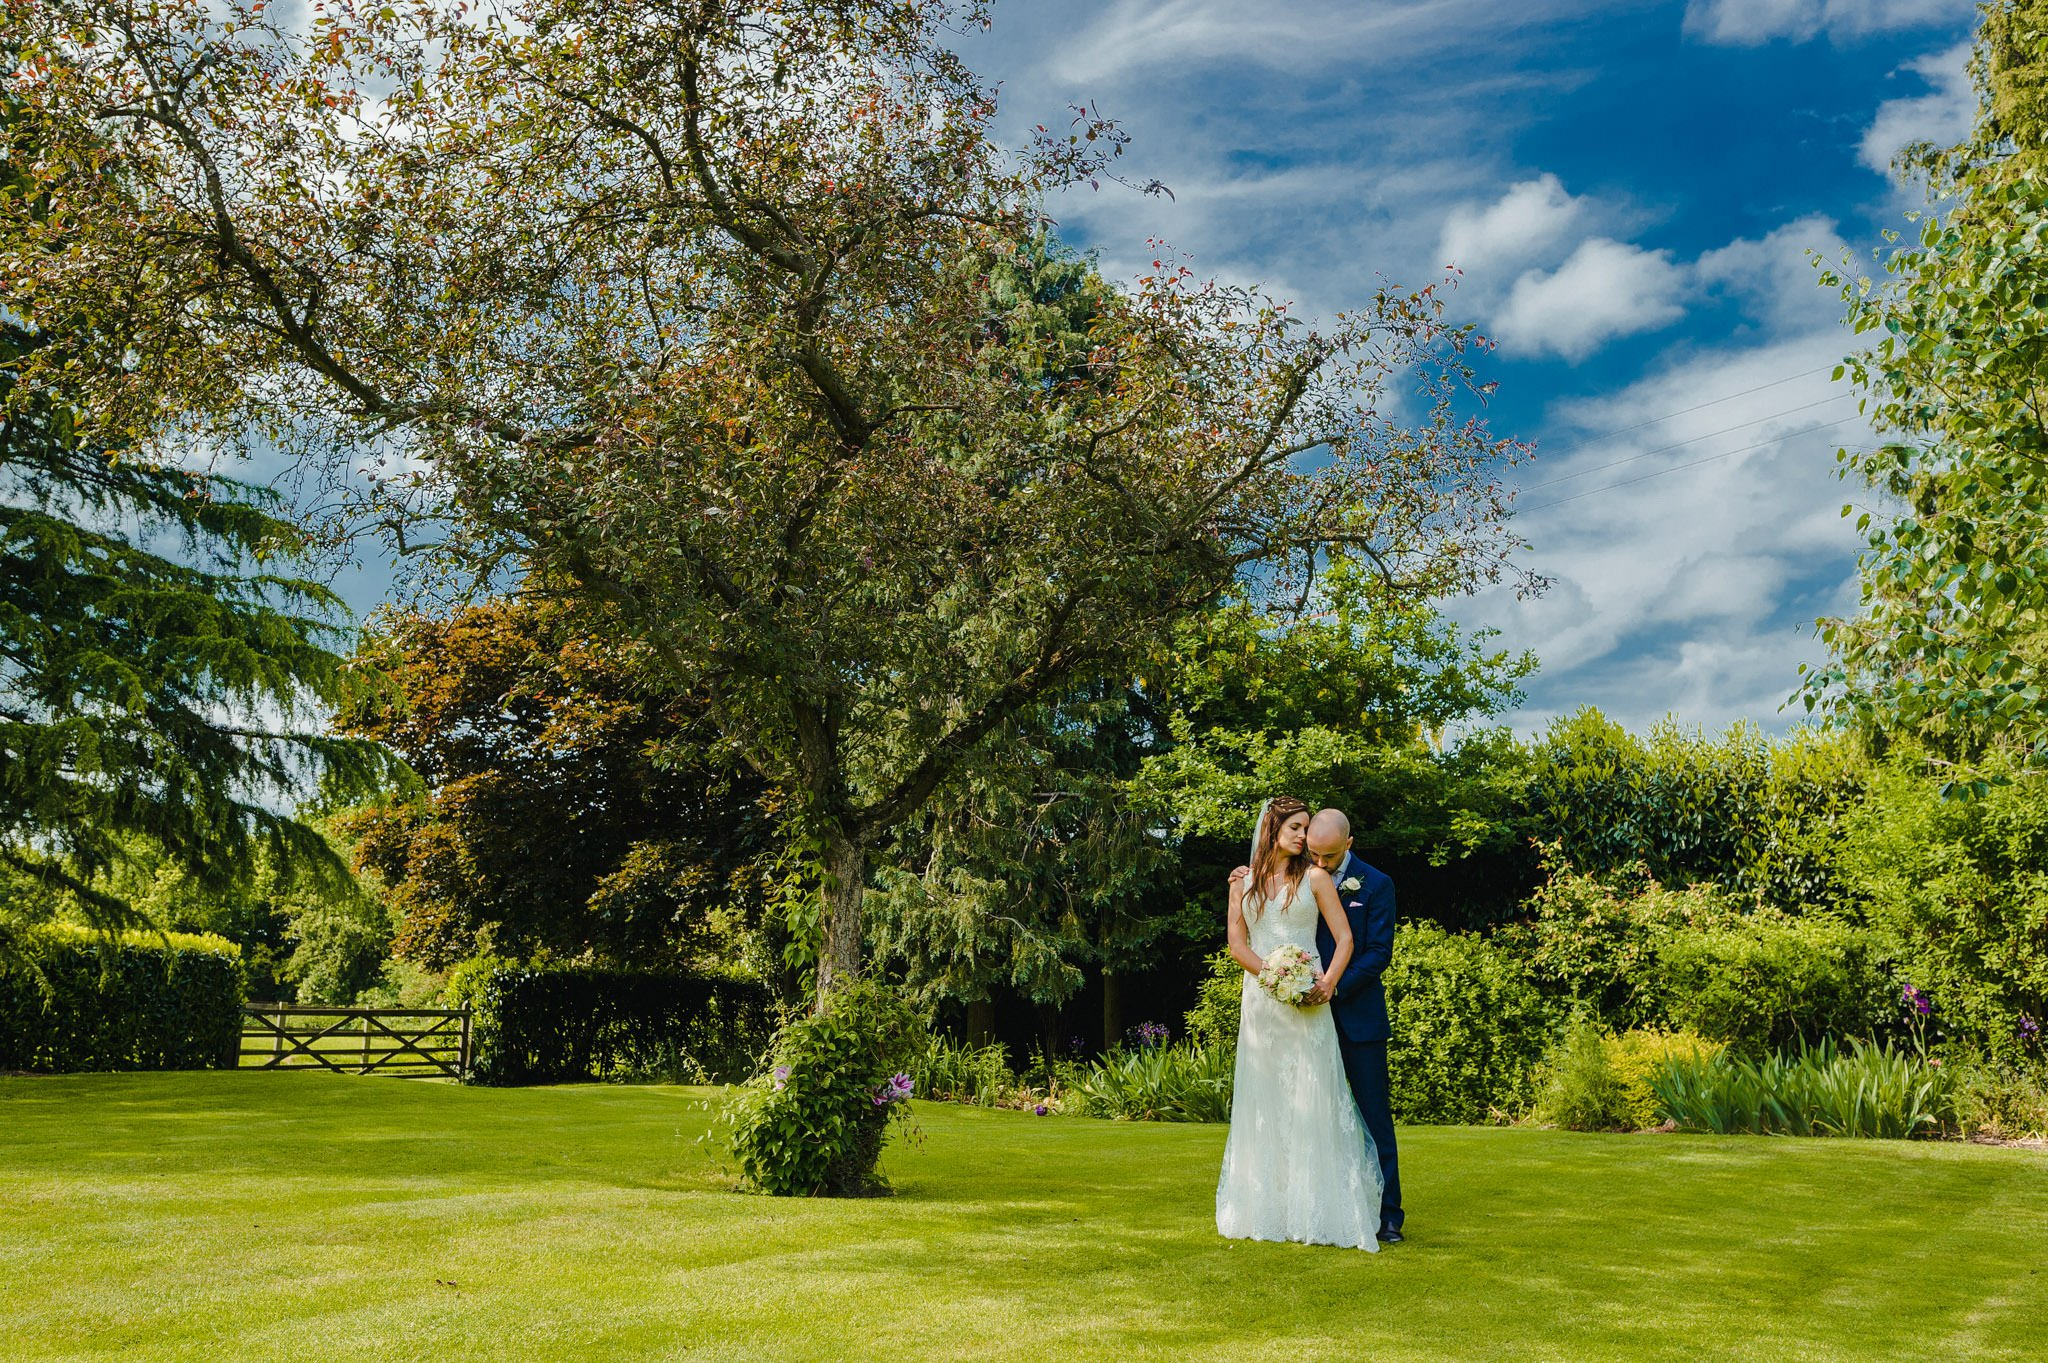 Wedding at Redhouse Barn in Stoke Prior, Worcestershire 126